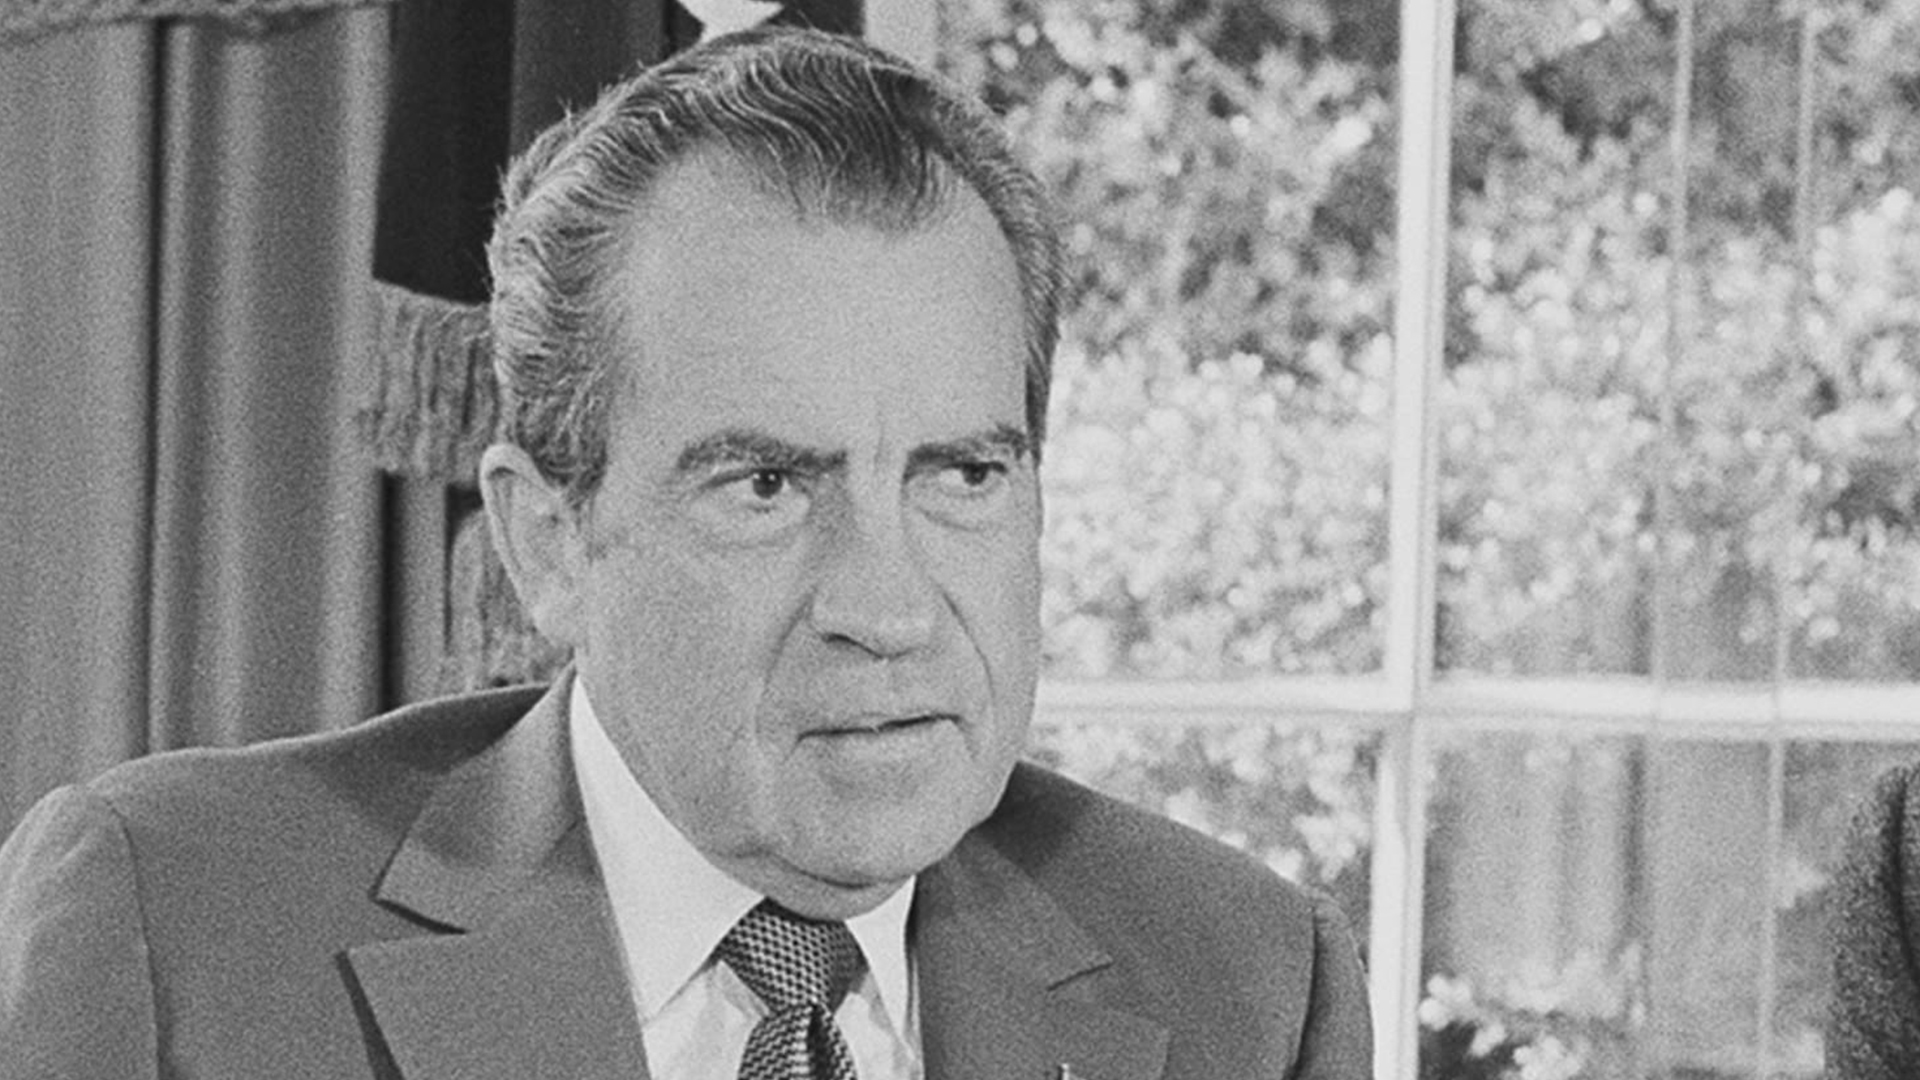 president richard nixon decided to launch a full scale attack on cambodia The process of vietnamization was in full swing the secret bombing of cambodia the nixon administration decided to launch president richard nixon.